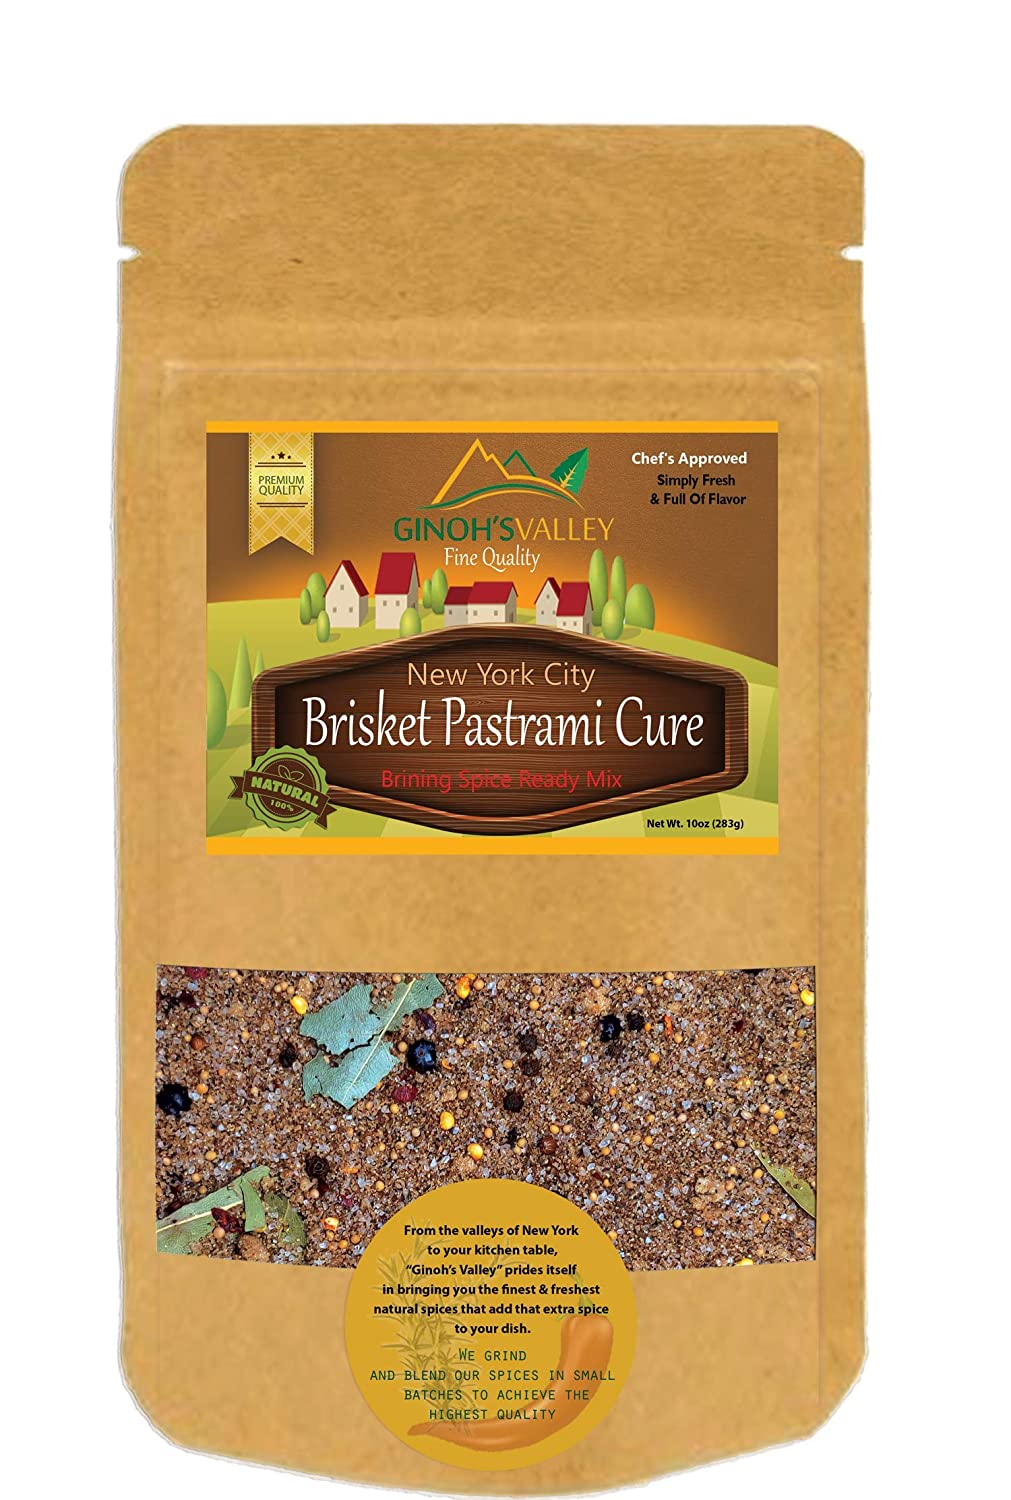 Ginoh's Valley Brisket Pastrami and Corn Beef Cure Seasoning. Brining Spice Ready Mix -Will cure 5lb of Brisket- New York City Style 10 oz